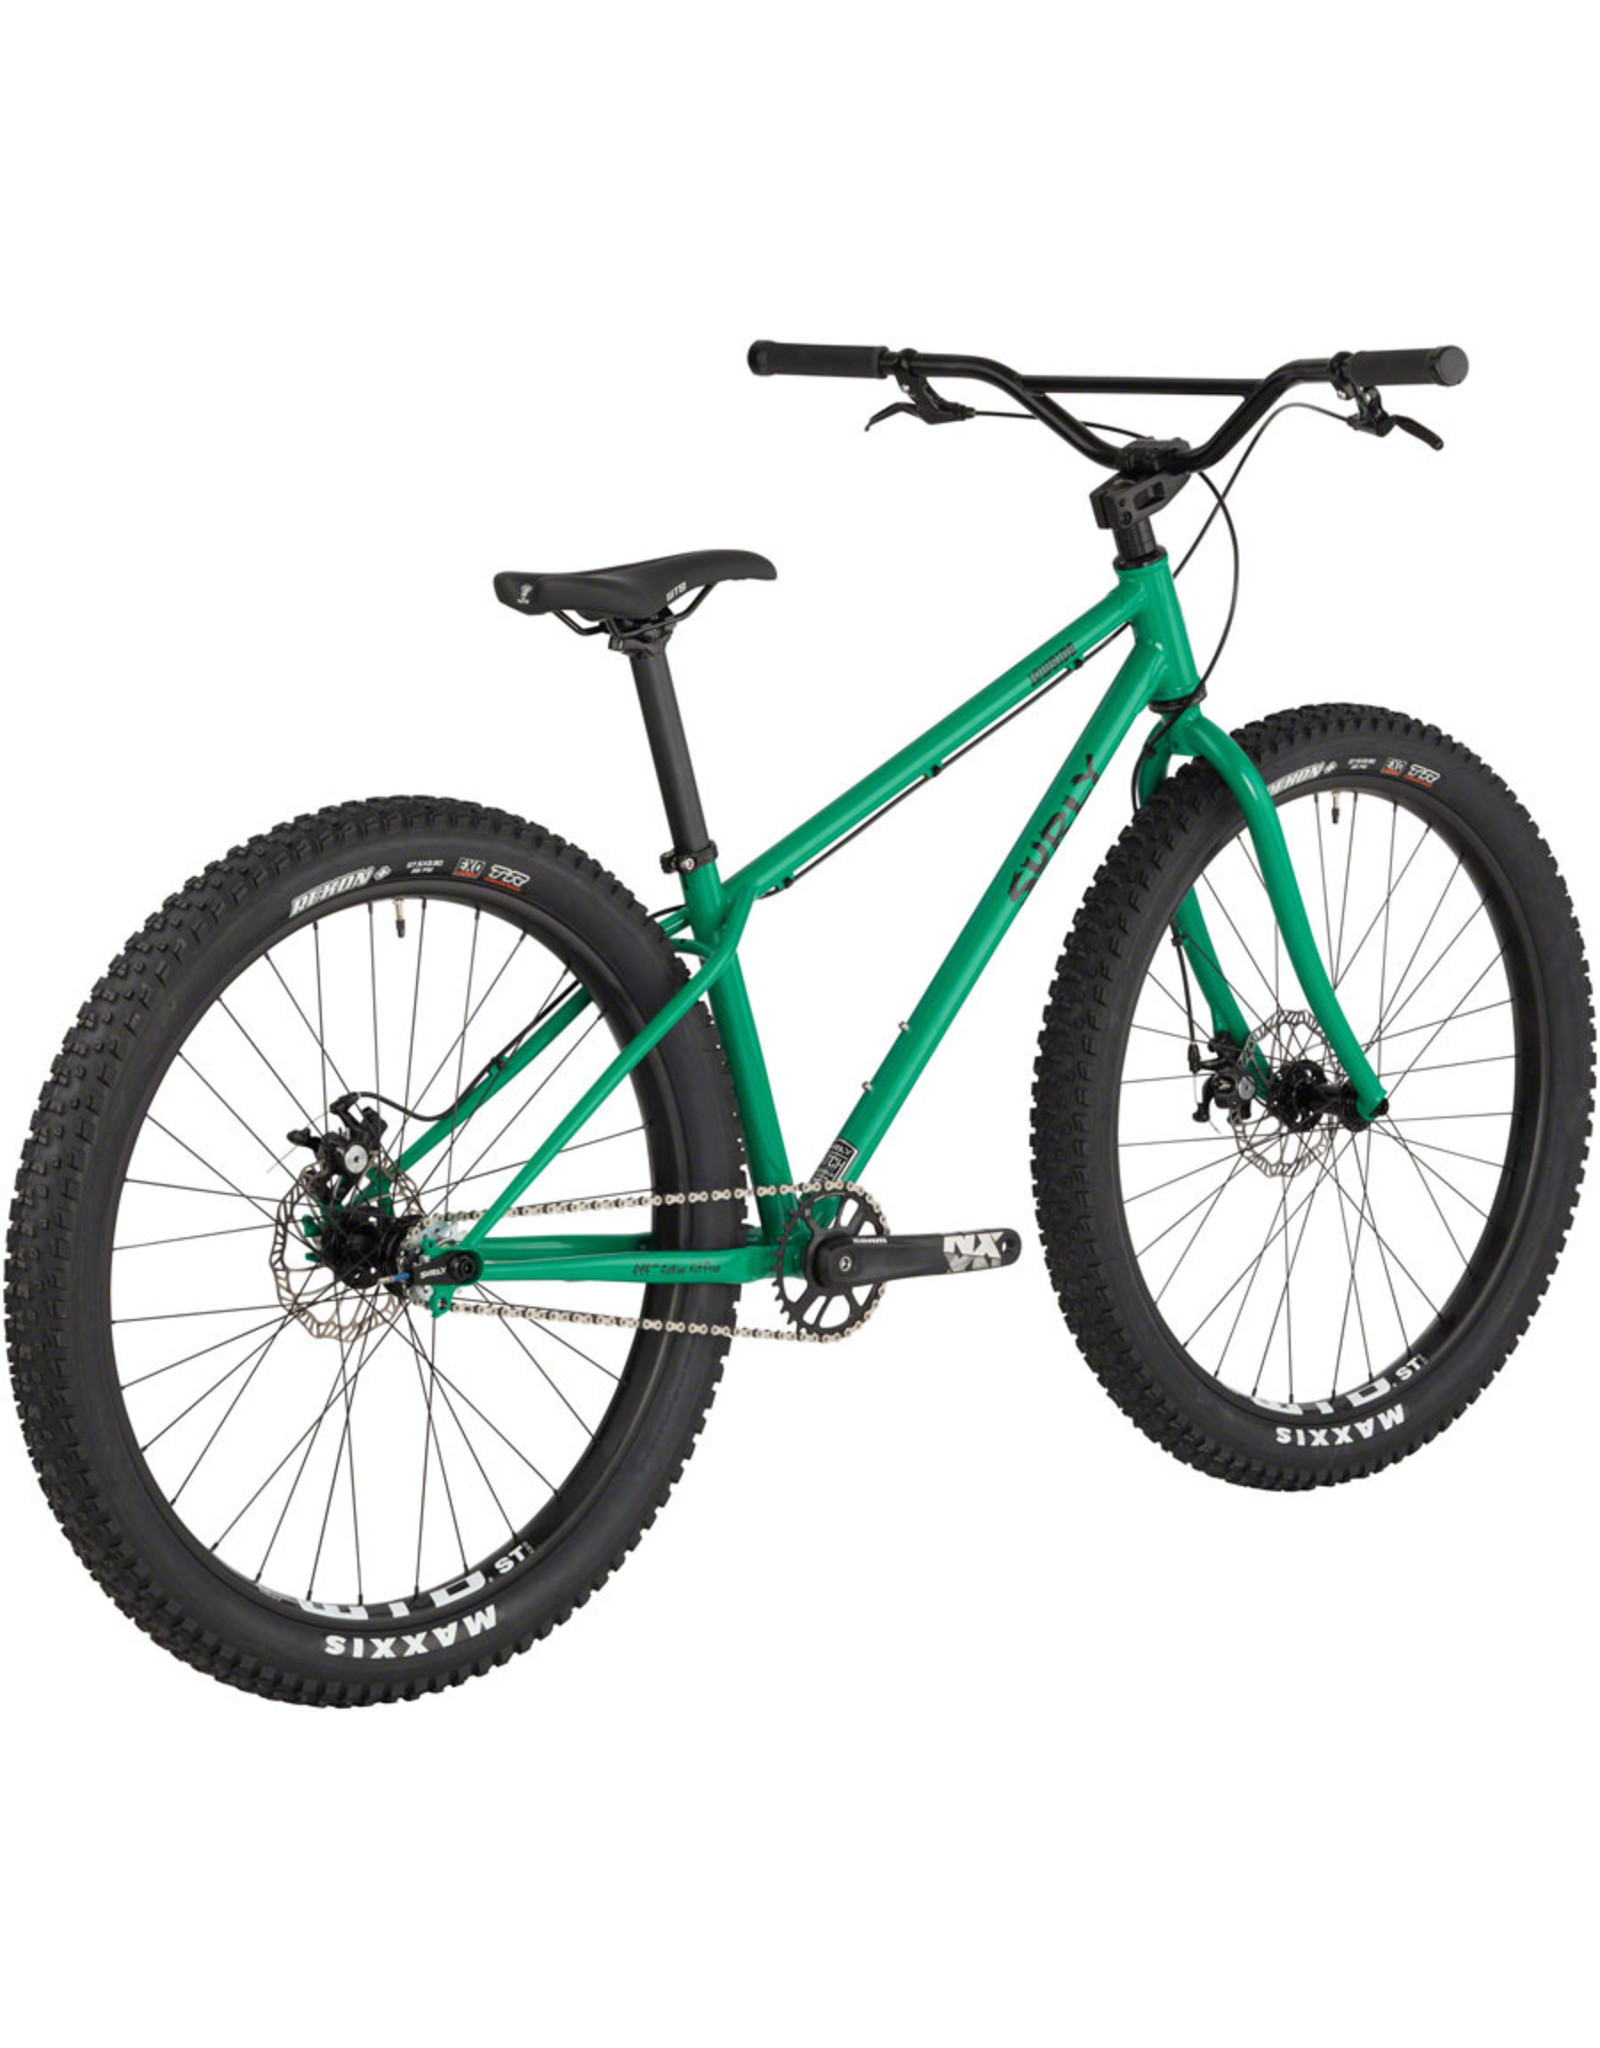 "Surly Surly Lowside 27.5"" Bike Medium Green Astro Turf"